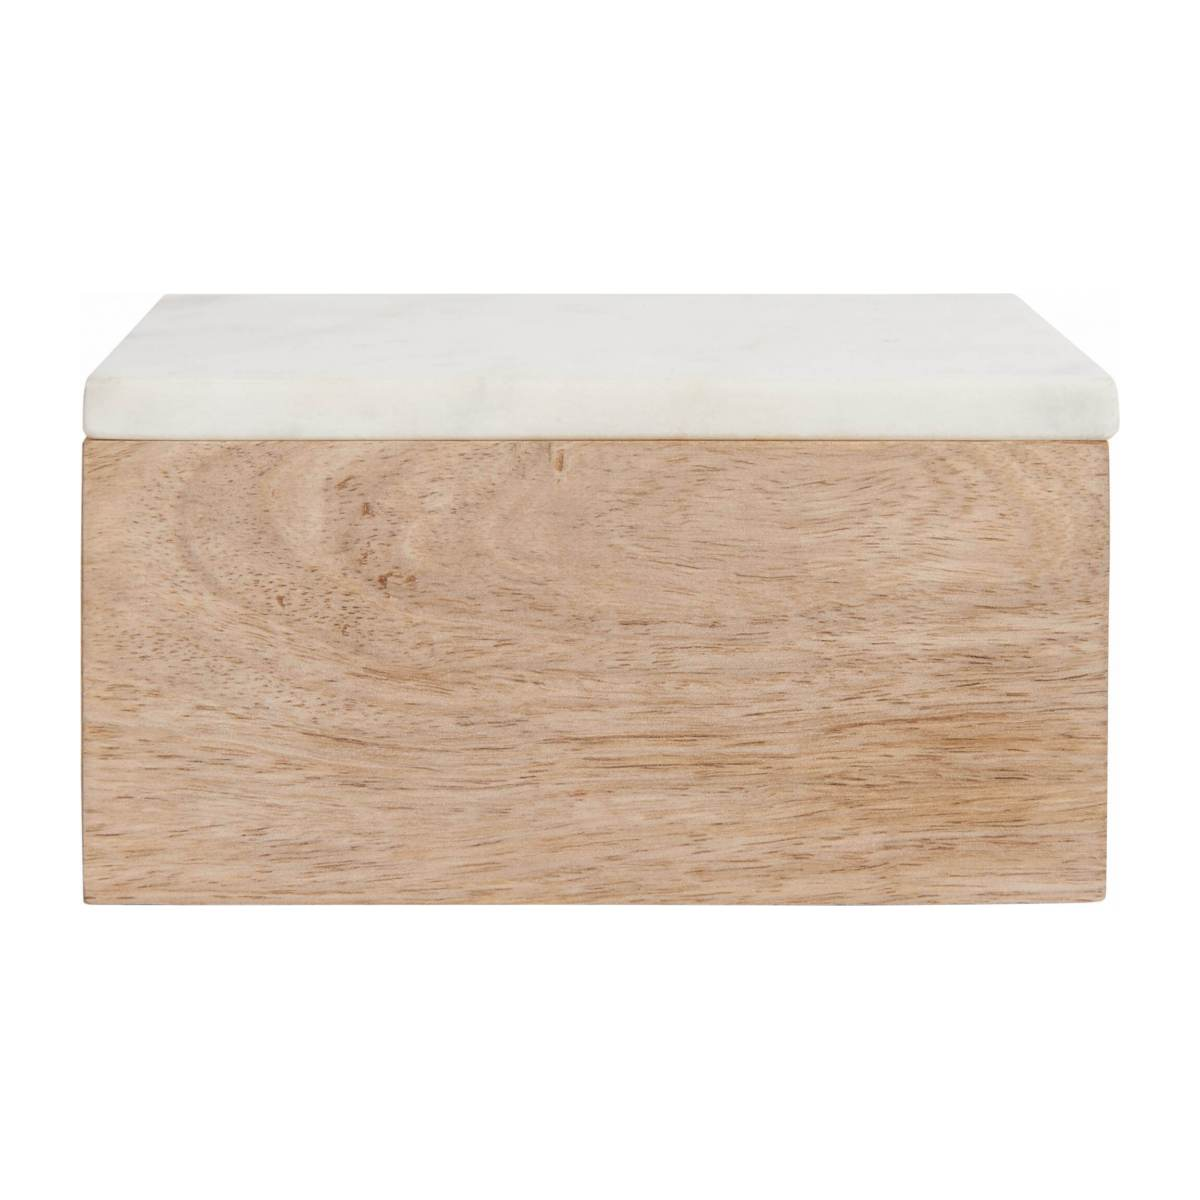 Box made of wood and marble n°2